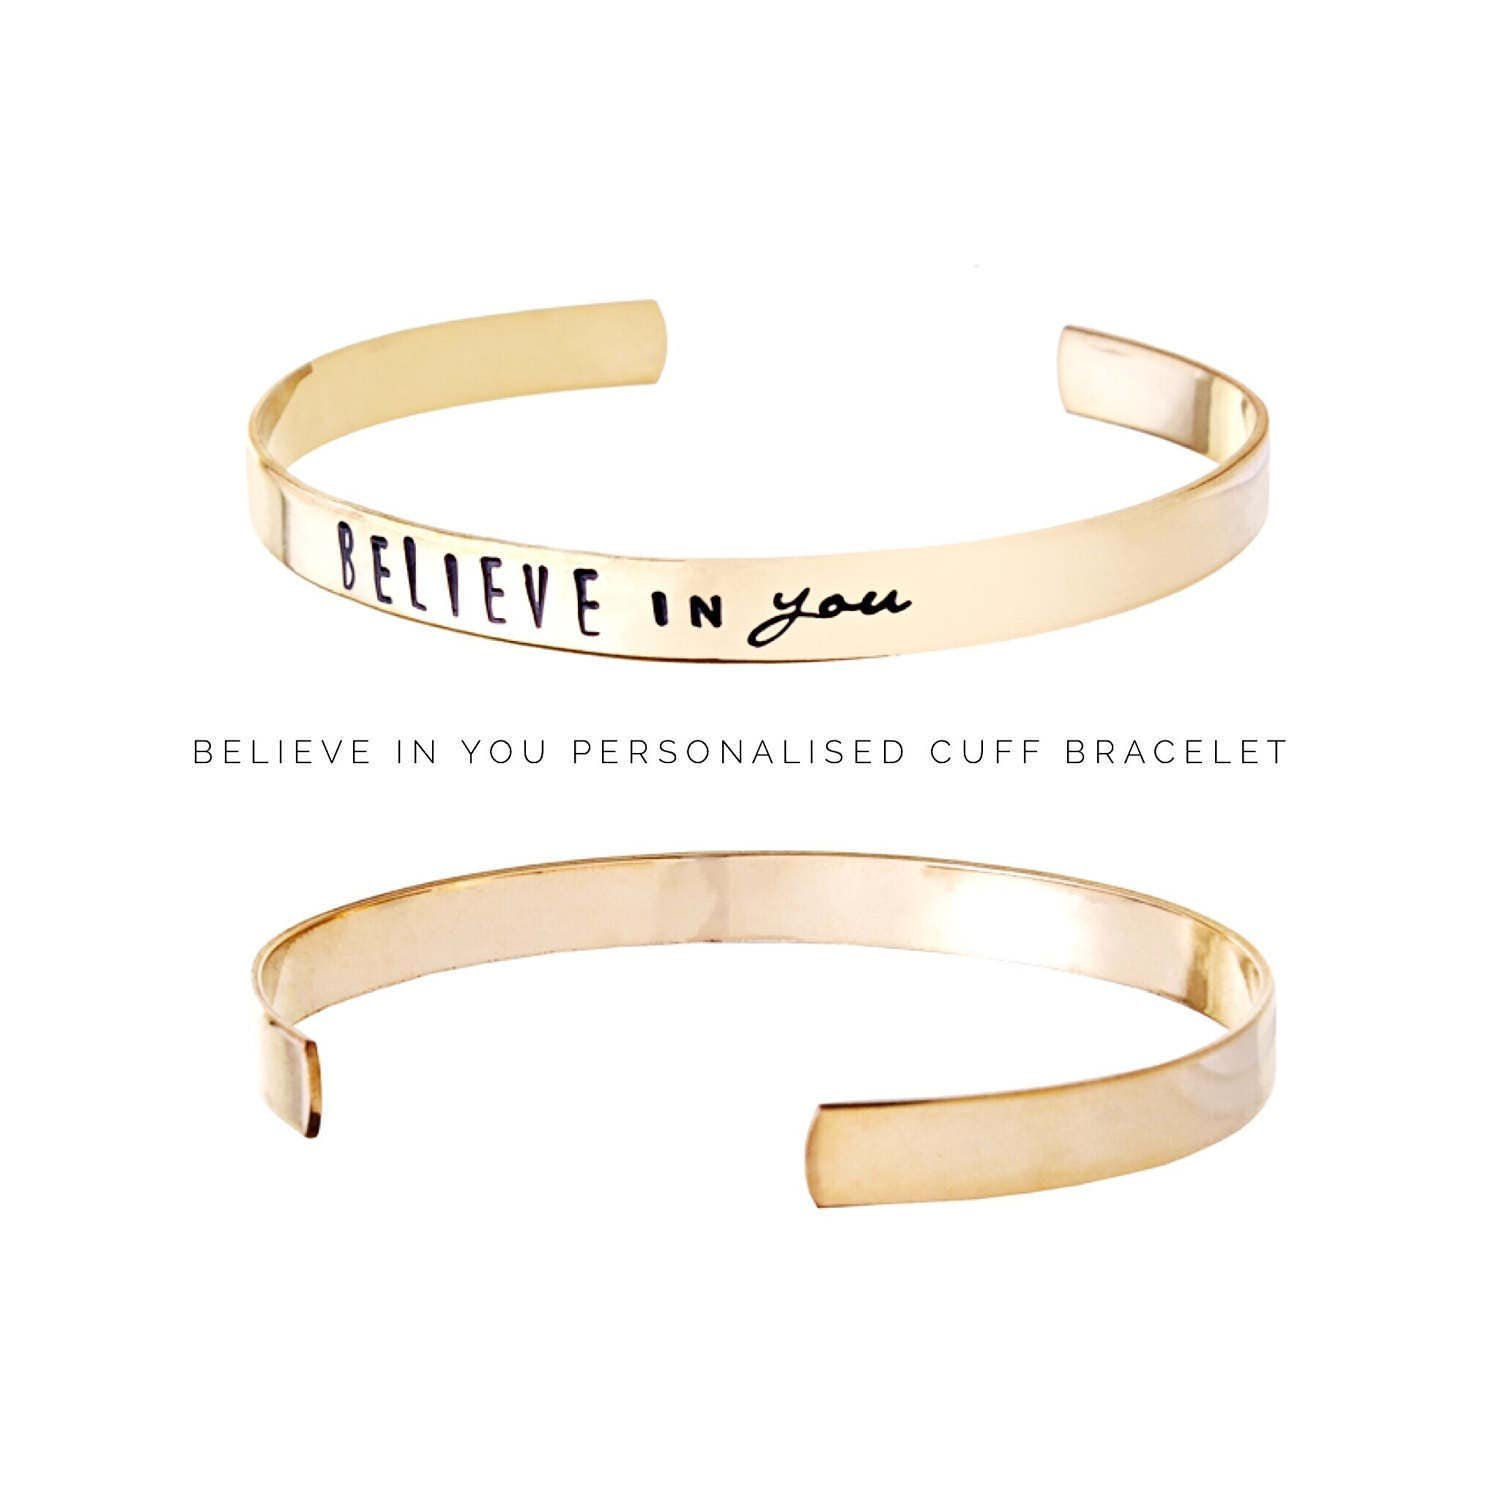 Womens gift  Personalized jewelry  Believe in you  Personalized Bracelet  Gift ideas for her  Gifts for friends (C178)